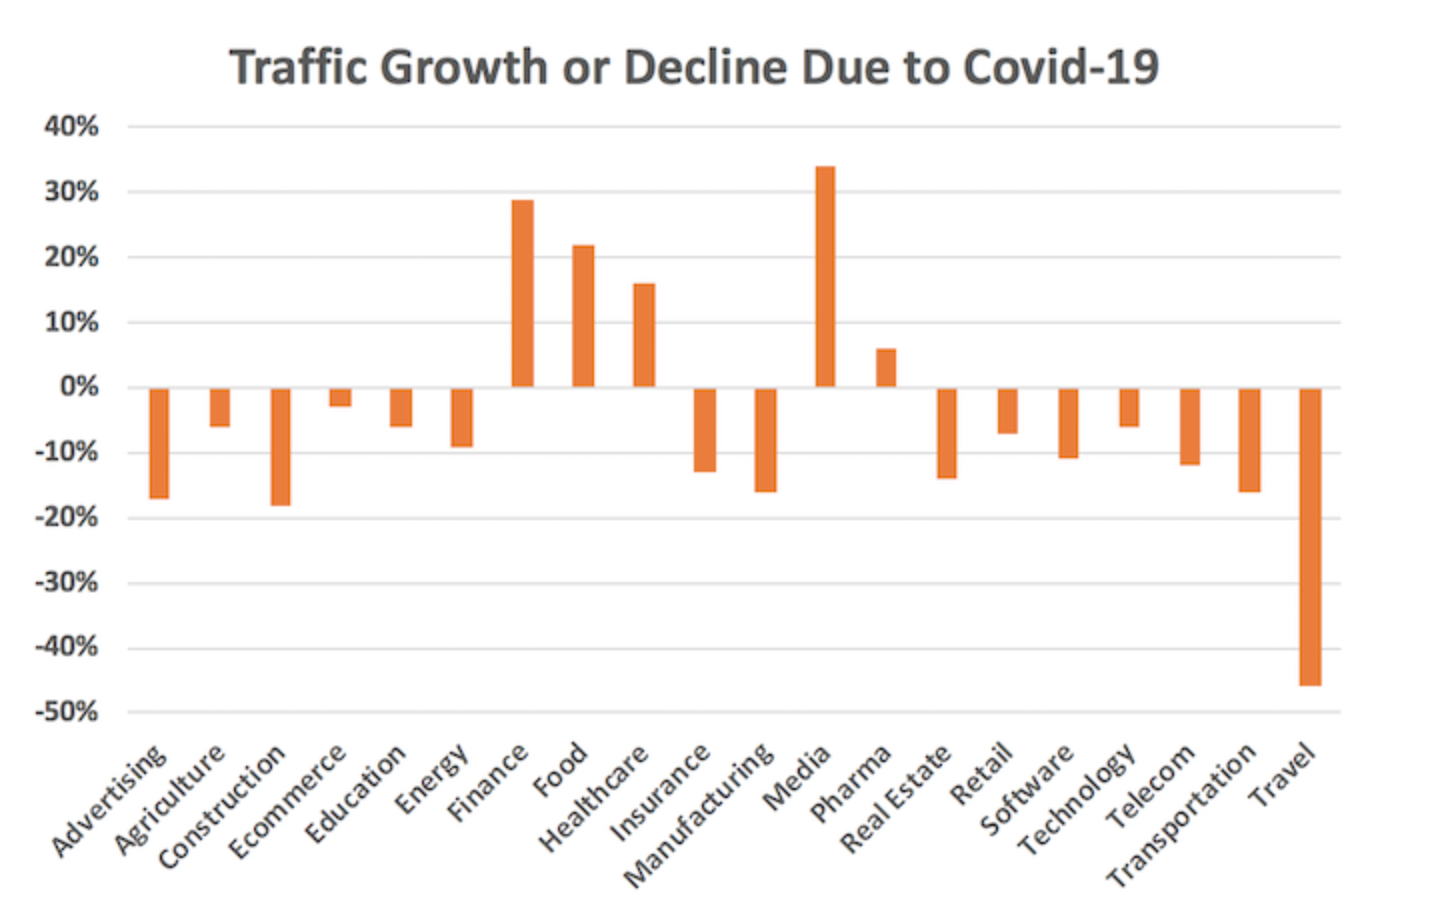 COVID-19 in The Age of Technology and The Homo Deus - Traffic Growth and Decline Due to Covid-19